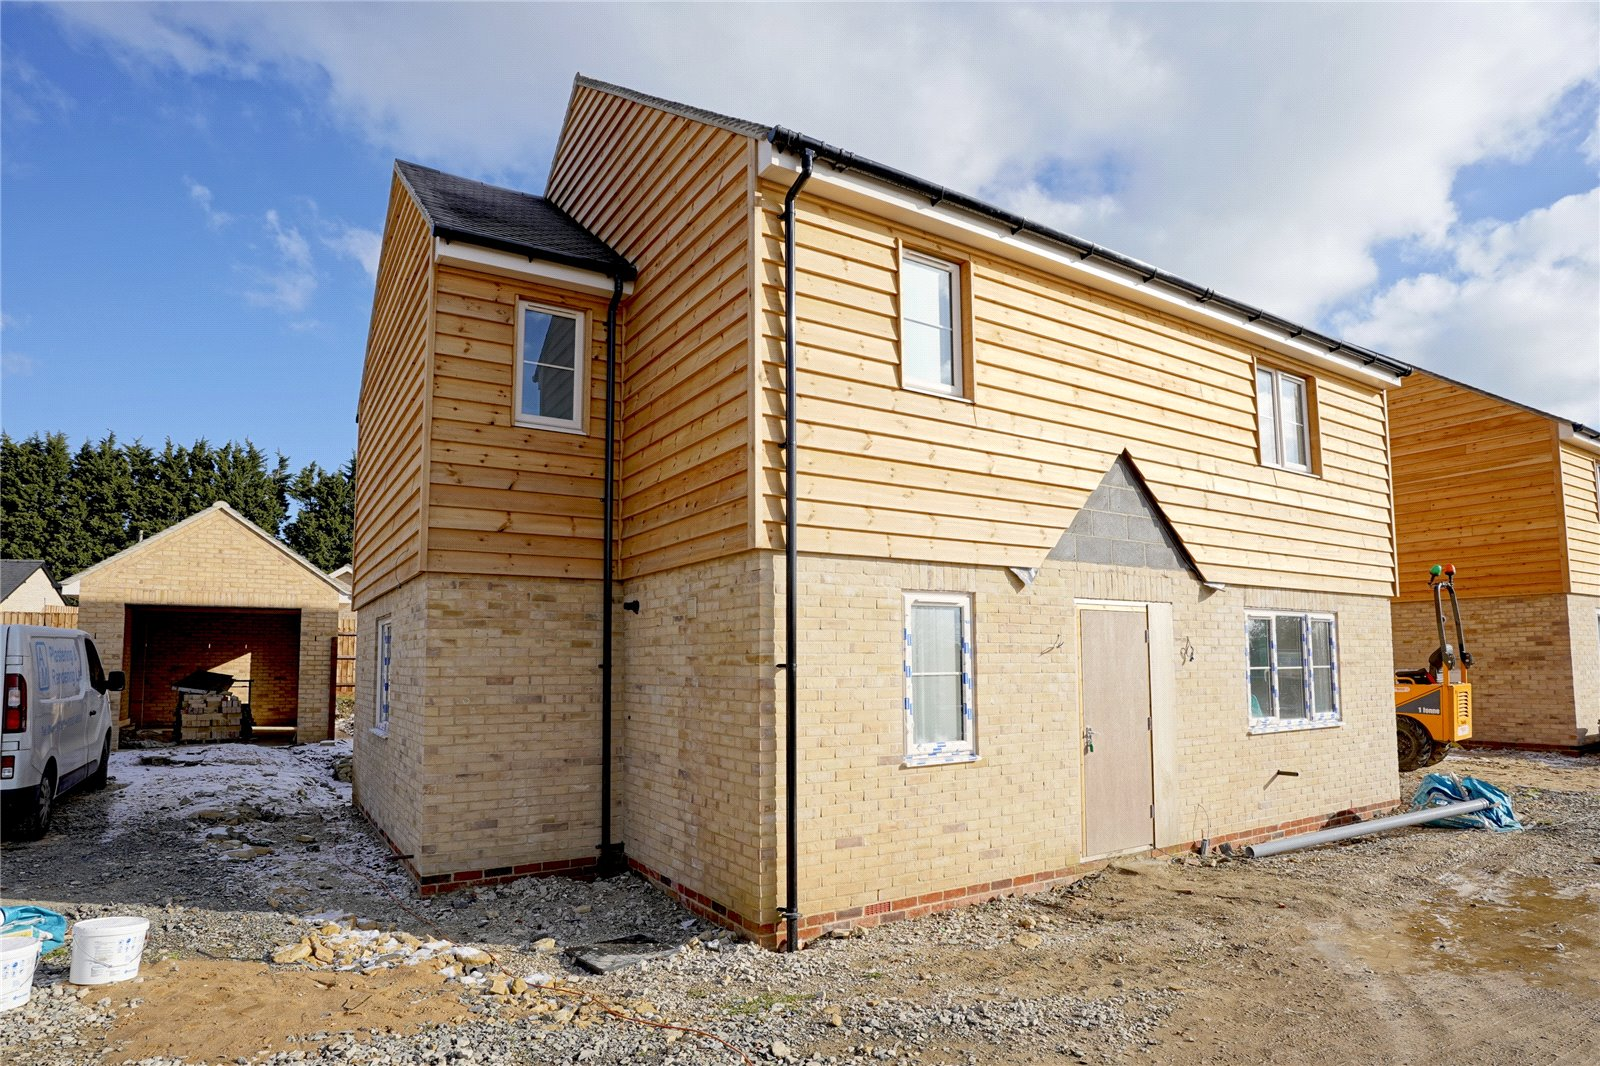 3 bed house for sale in Great Stukeley, PE28 4AW 0